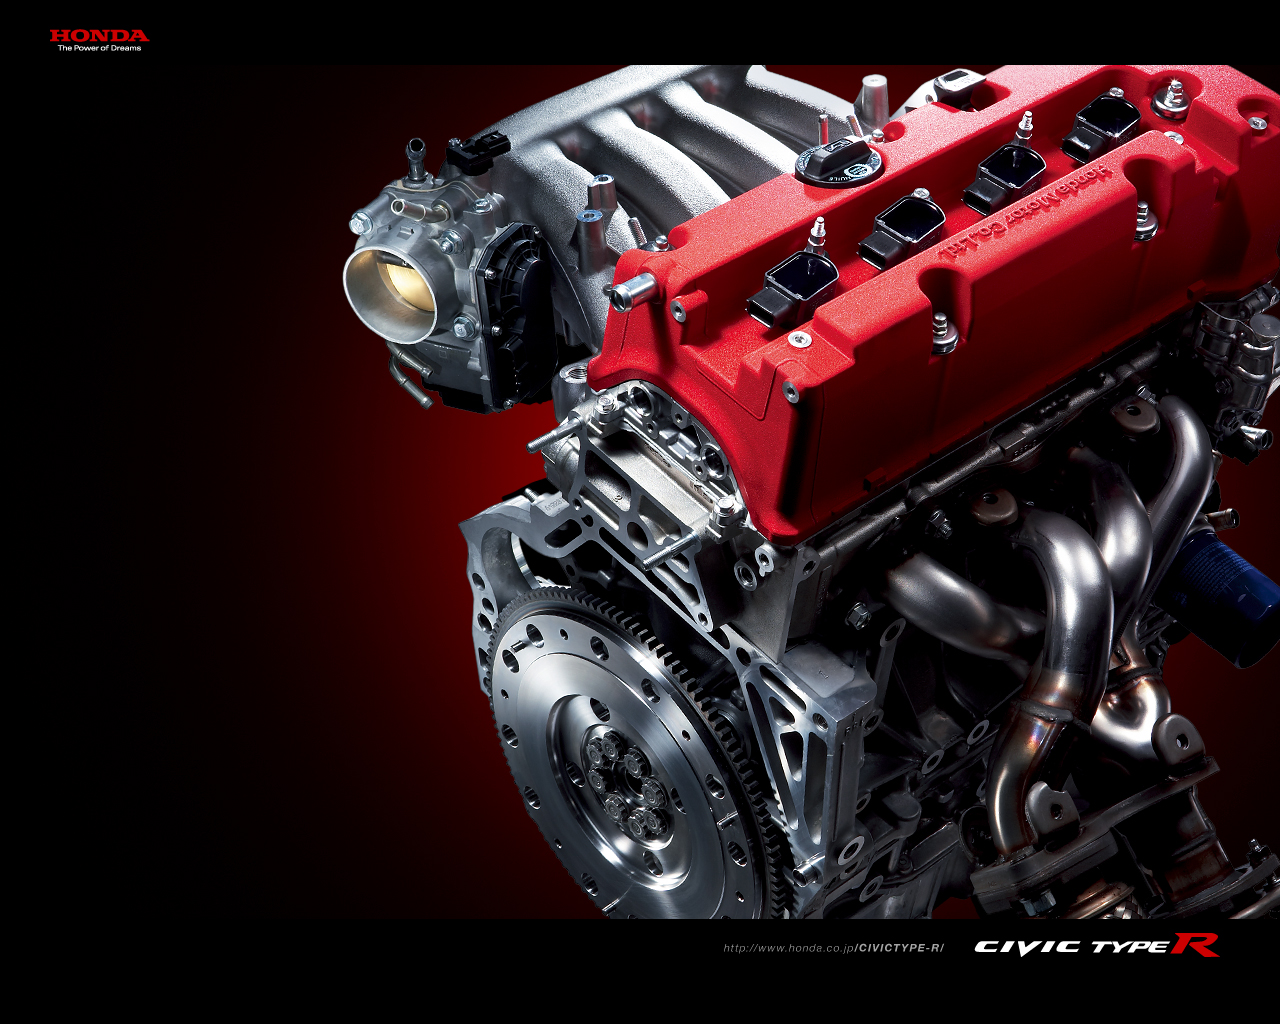 33   Honda Engine Cutaway Wallpapers On Wallpapersafari